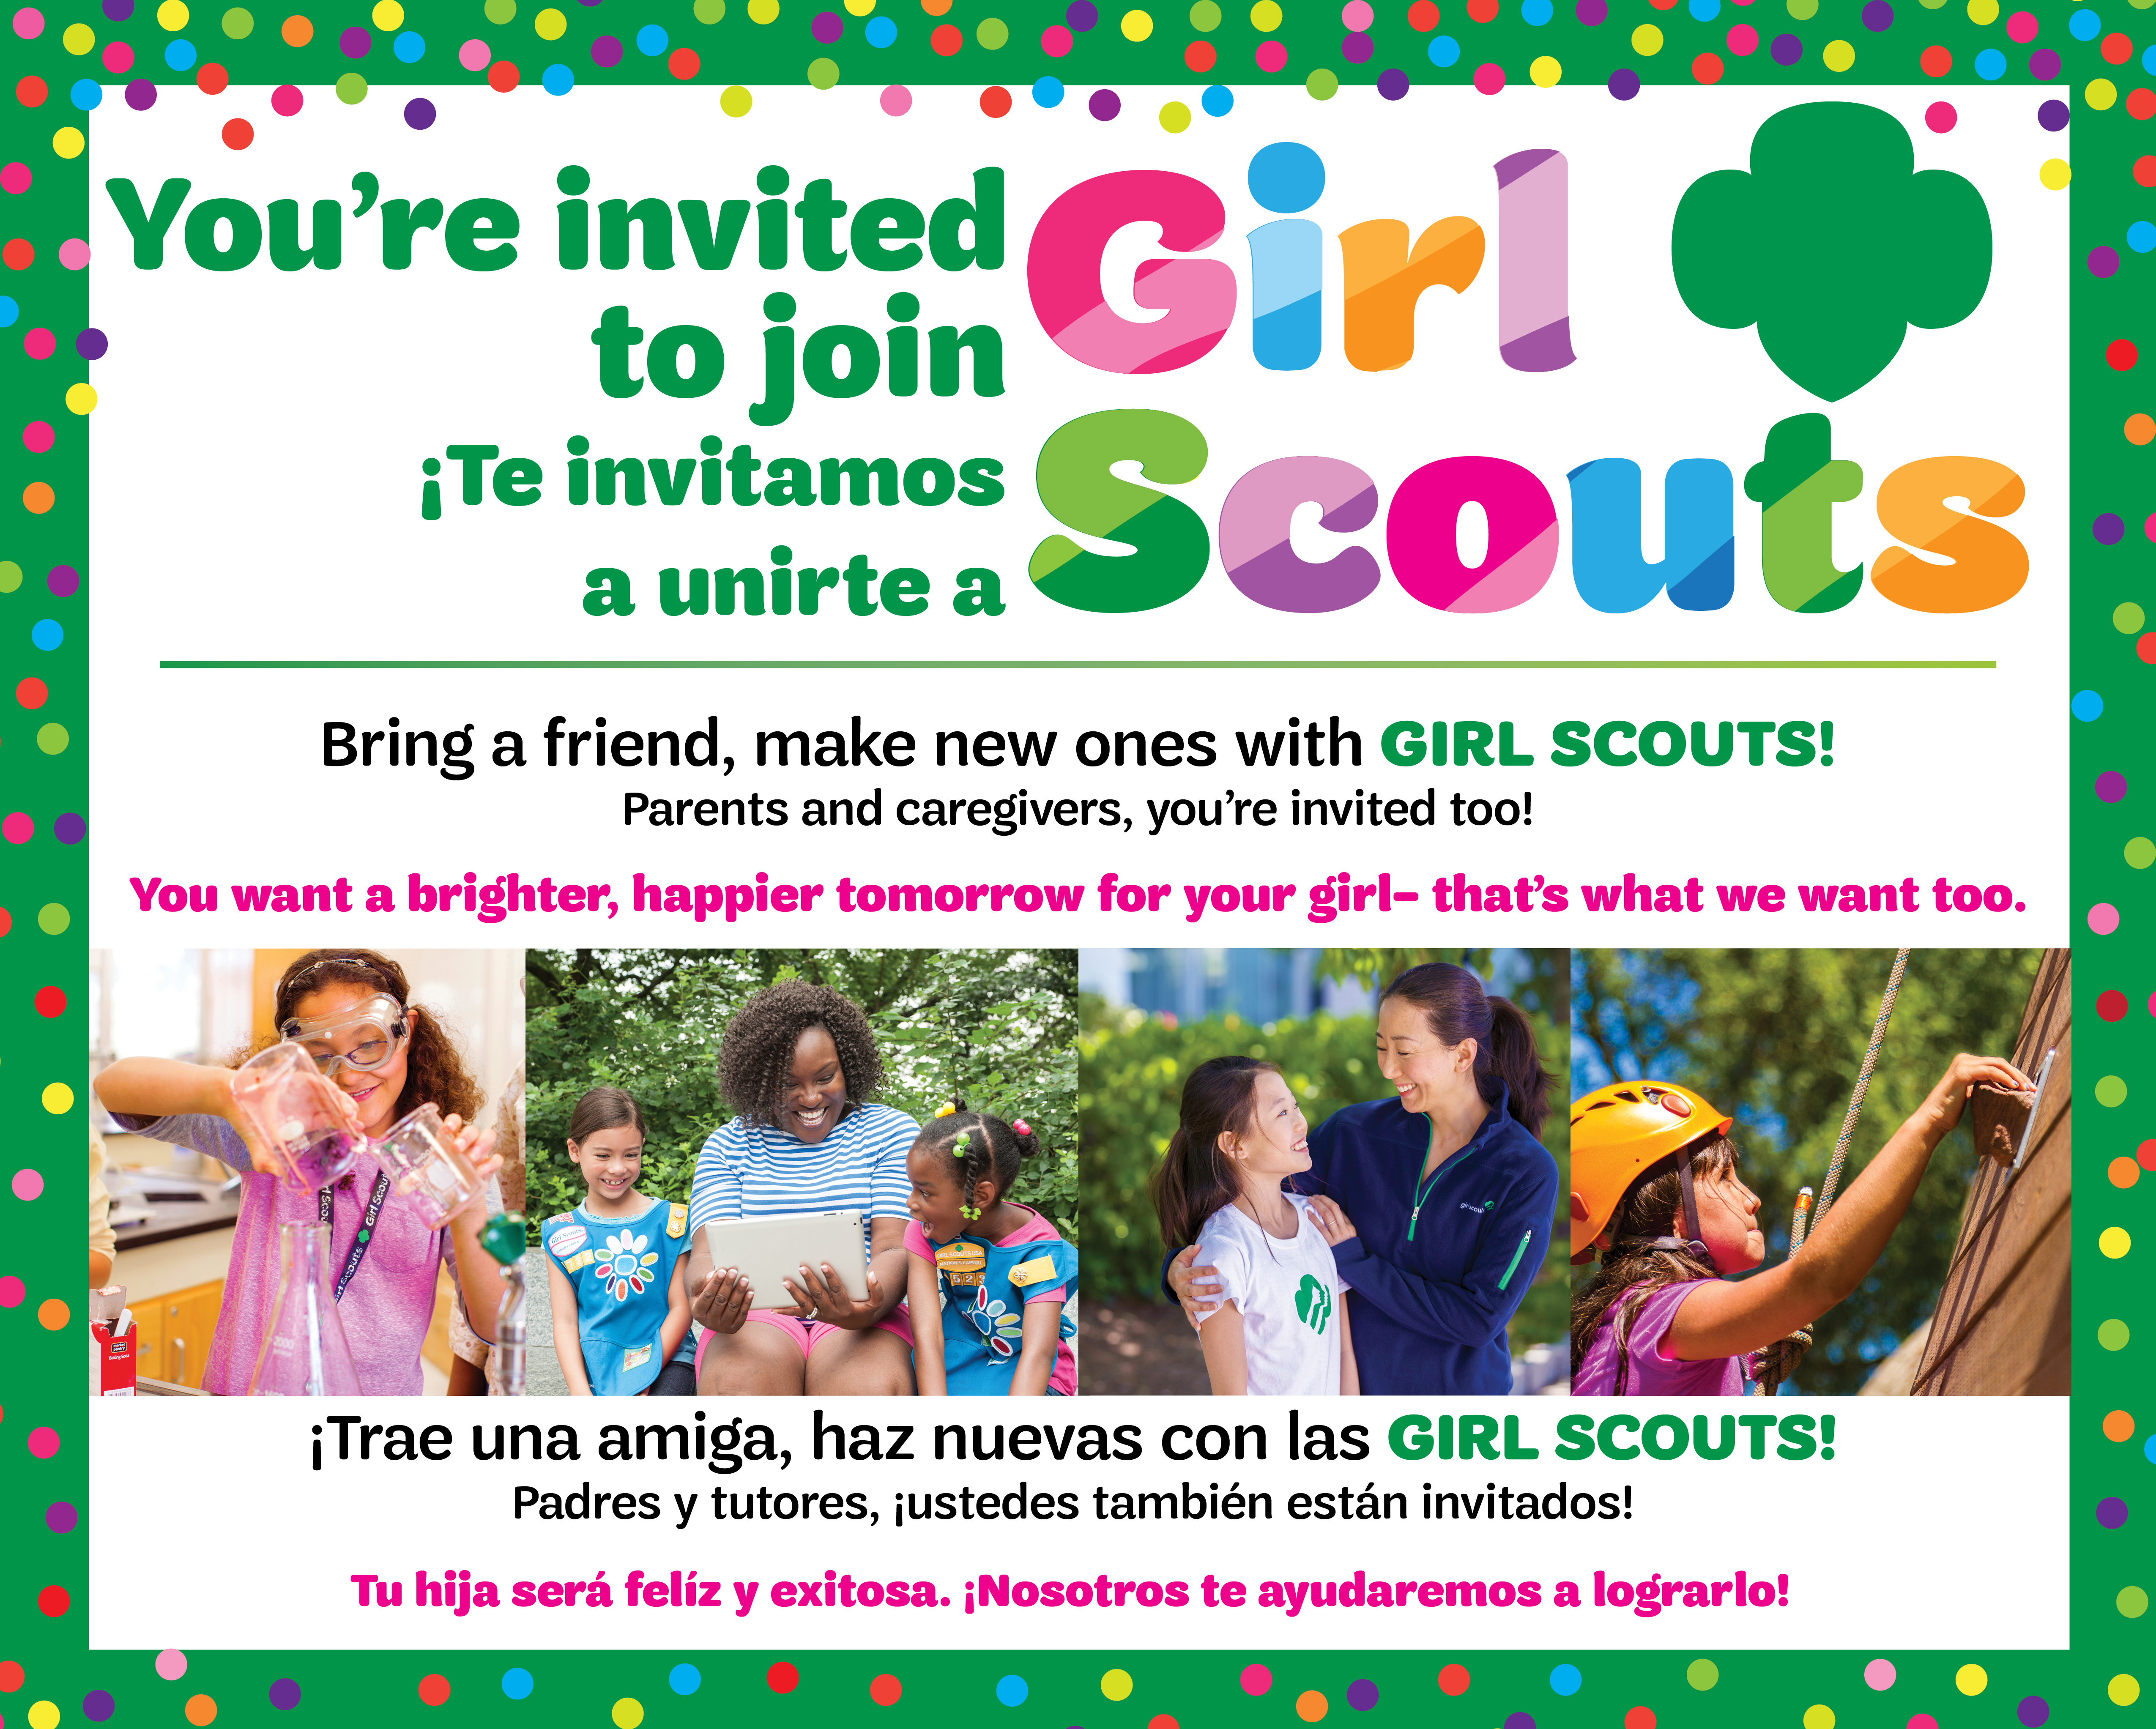 You're invited to join girl scouts